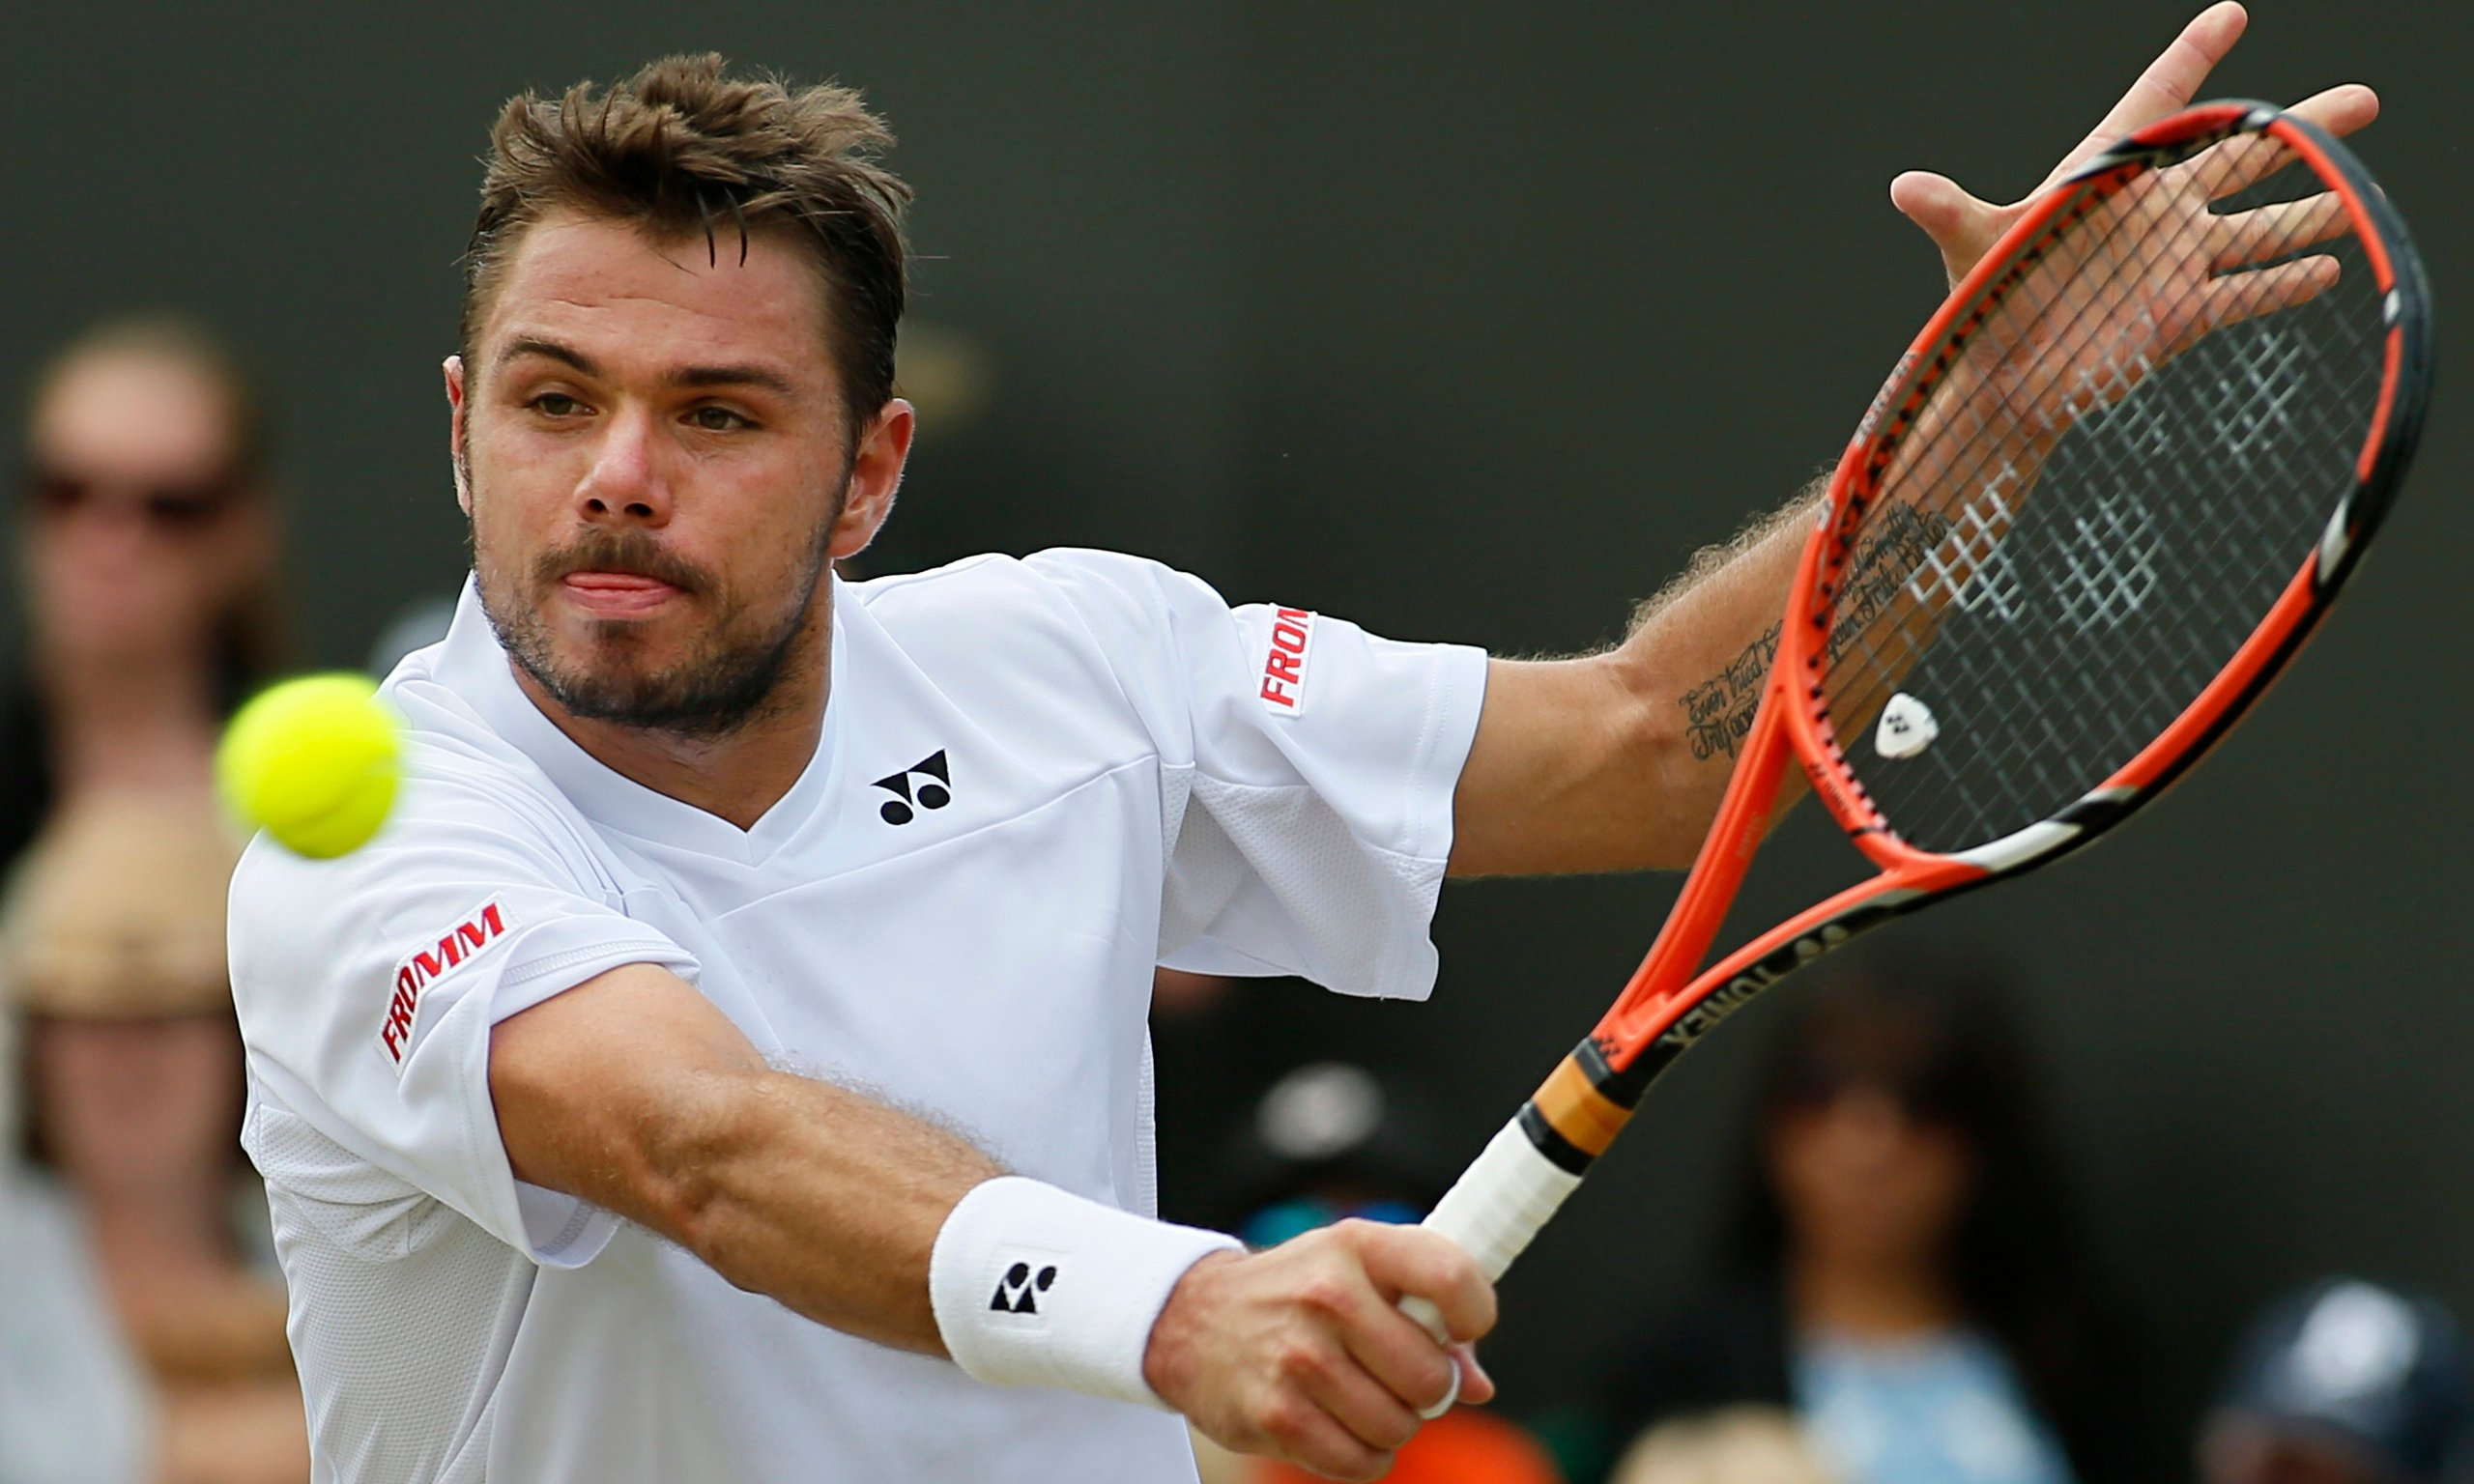 5 Things You May Not Know About Stan Wawrinka